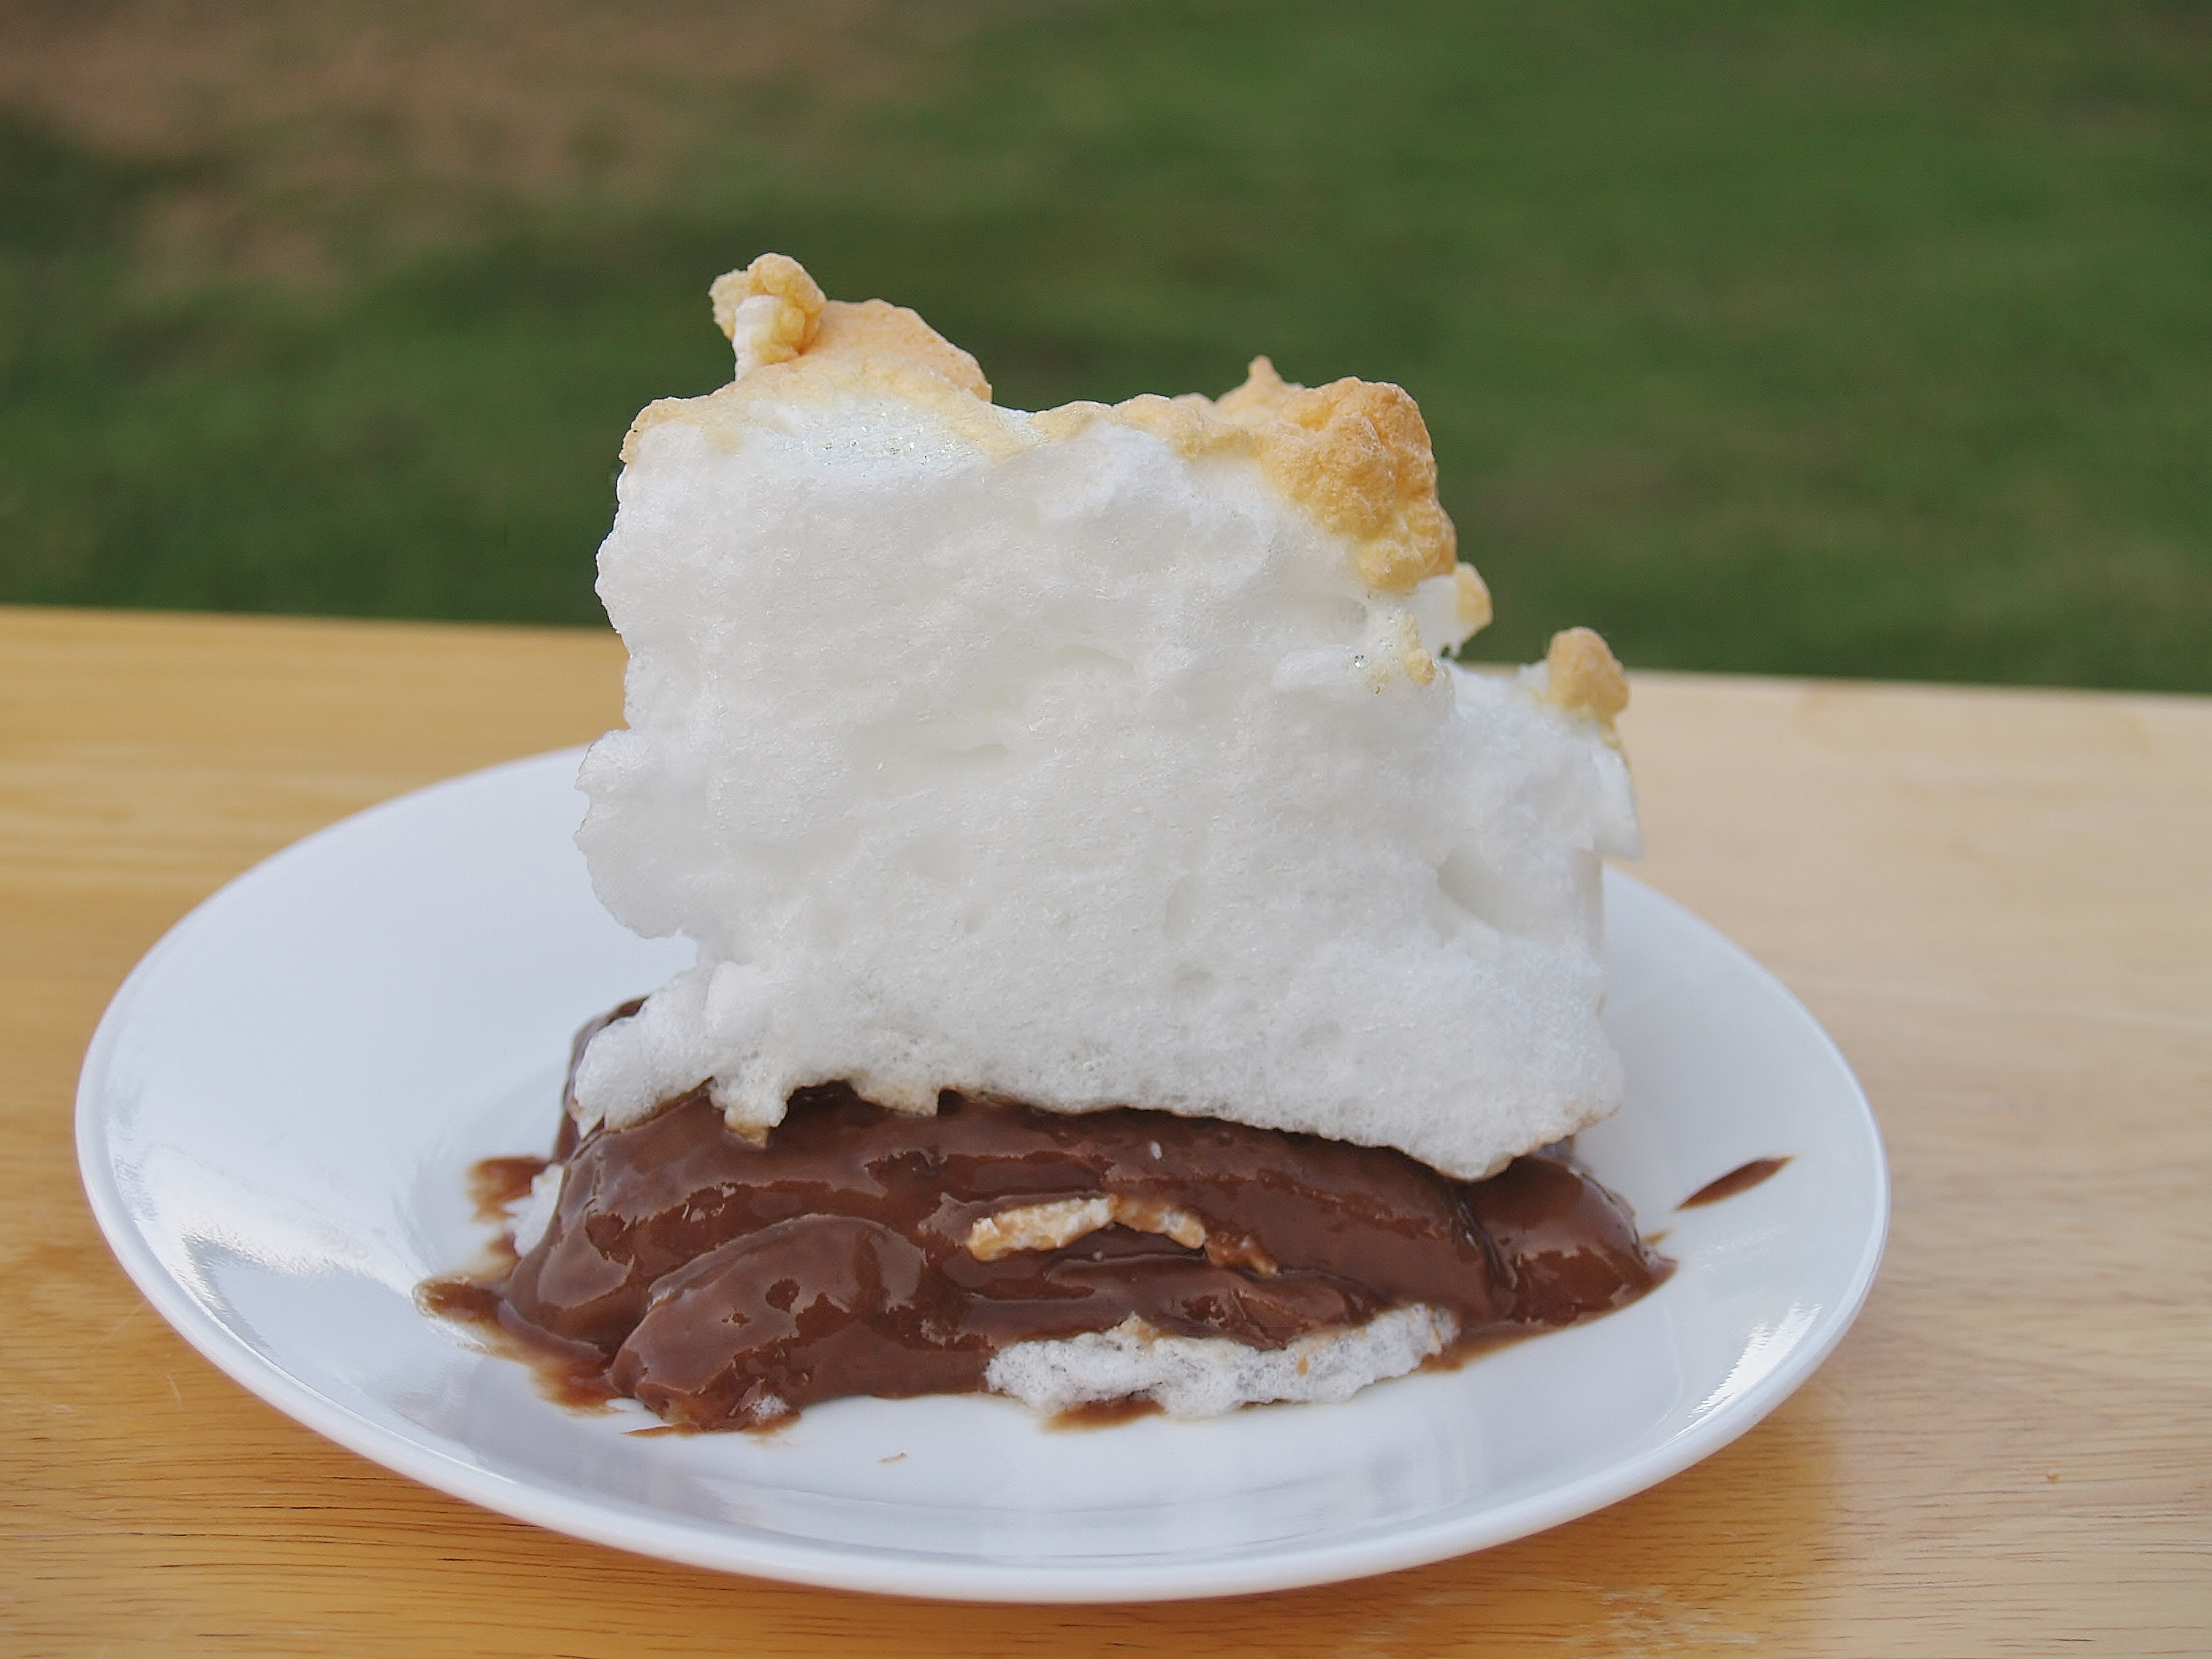 Chocolate Pie with Meringue from Kelli's Kitchen